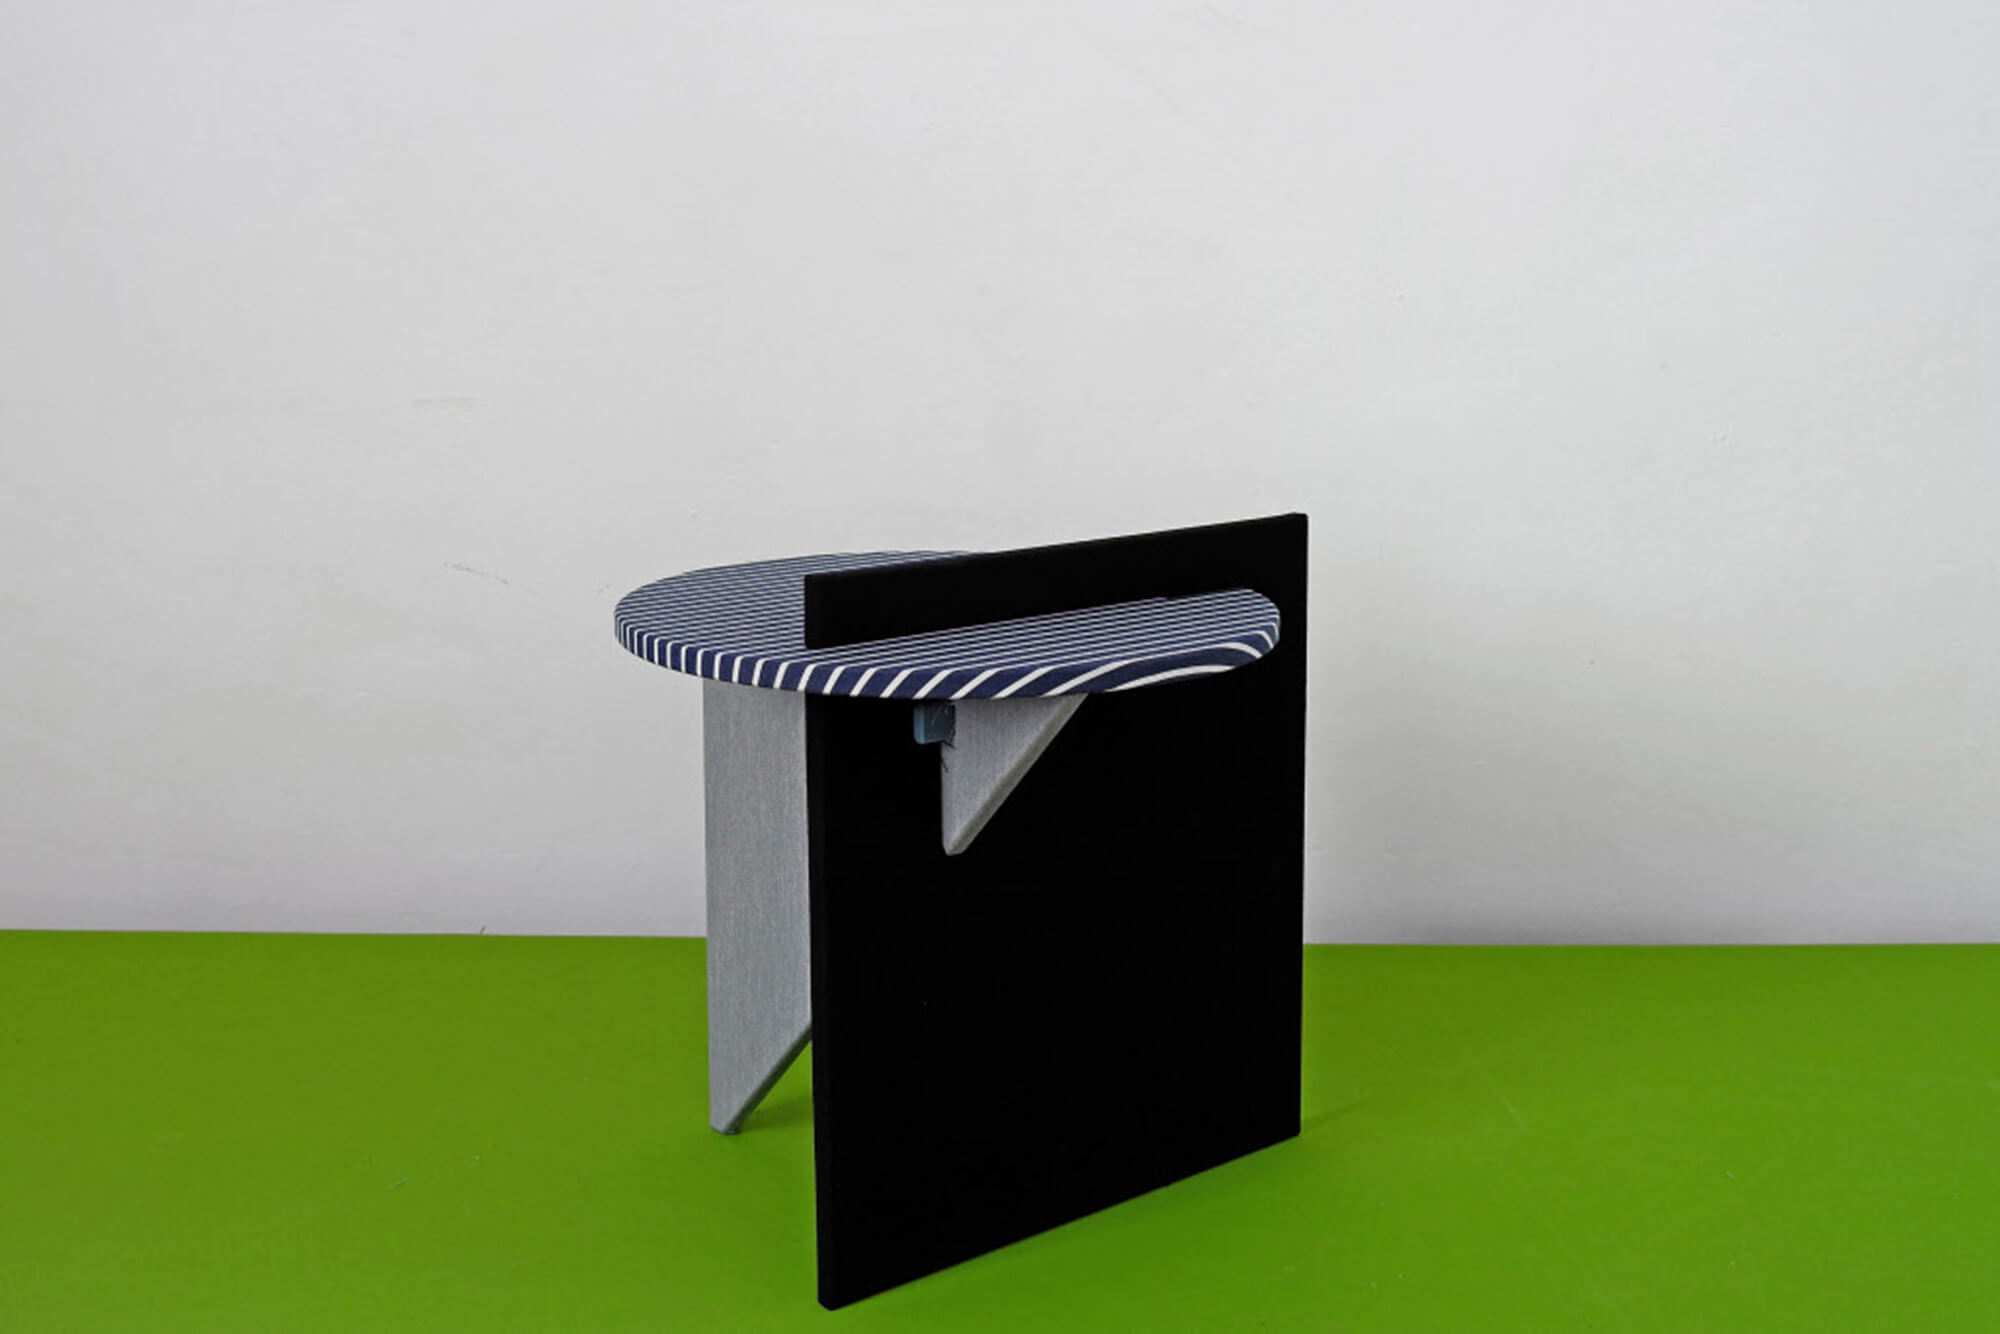 Side table by Atelier Lavit in black and navy in the Rosana Orlandi gallery